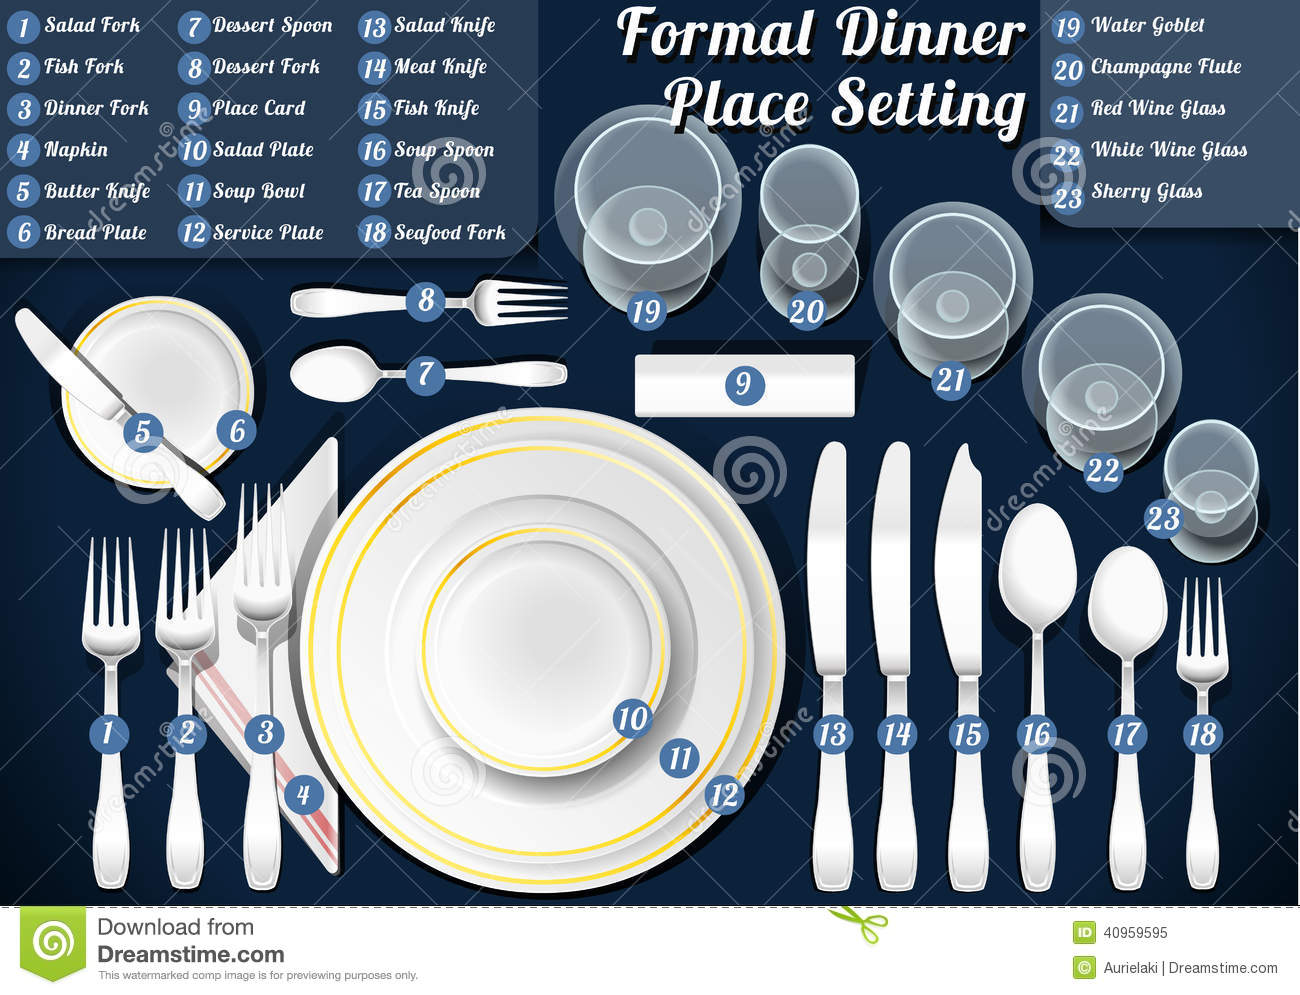 Set Of Place Setting Formal Dinner Stock Vector Image  : set place setting formal dinner detailed illustration illustration saved eps color space rgb 40959595 from www.dreamstime.com size 1300 x 995 jpeg 188kB